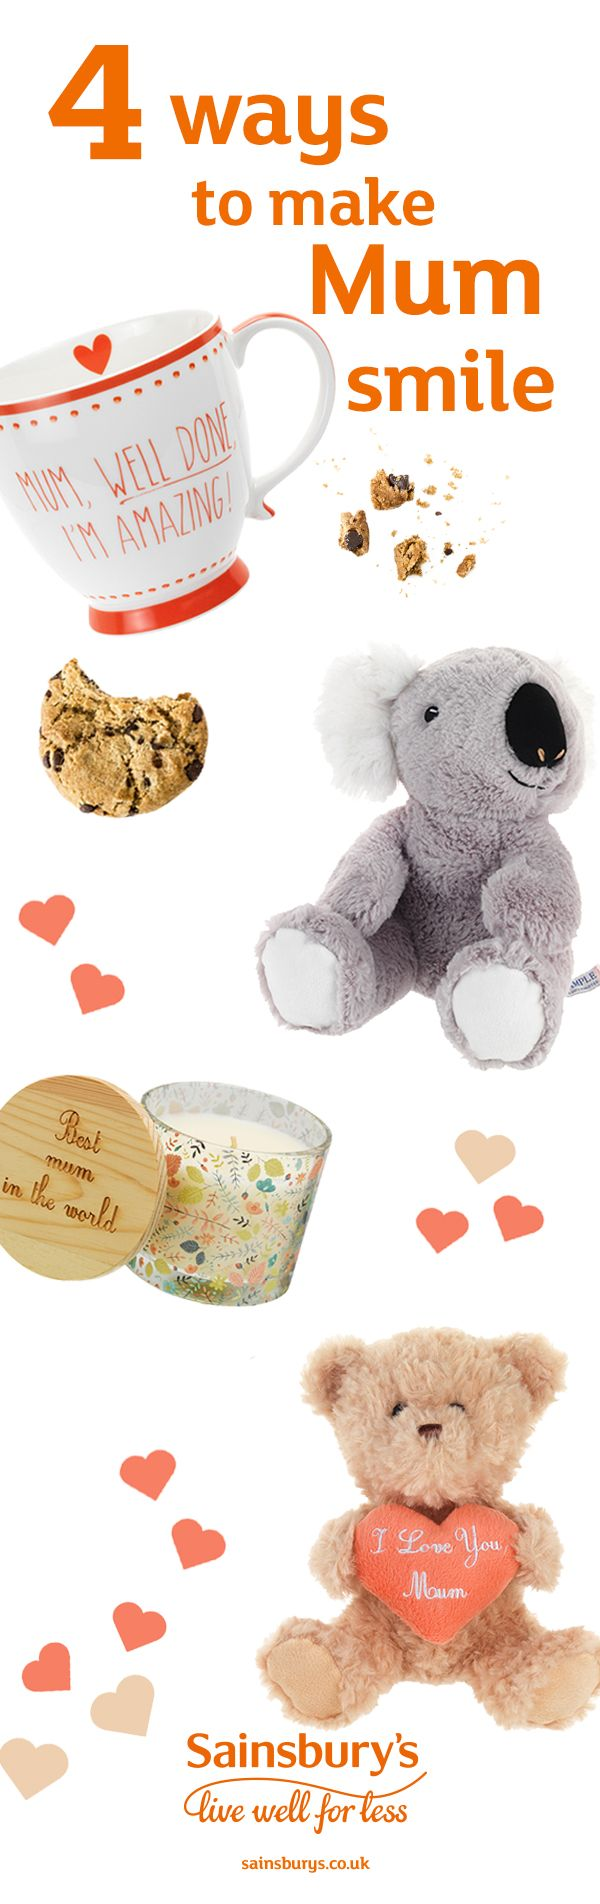 Make mum smile with cute Mother's Day gifts. Cuddly toys, candles, tea cups and mugs, chocolates and more. We've got something for every mum.